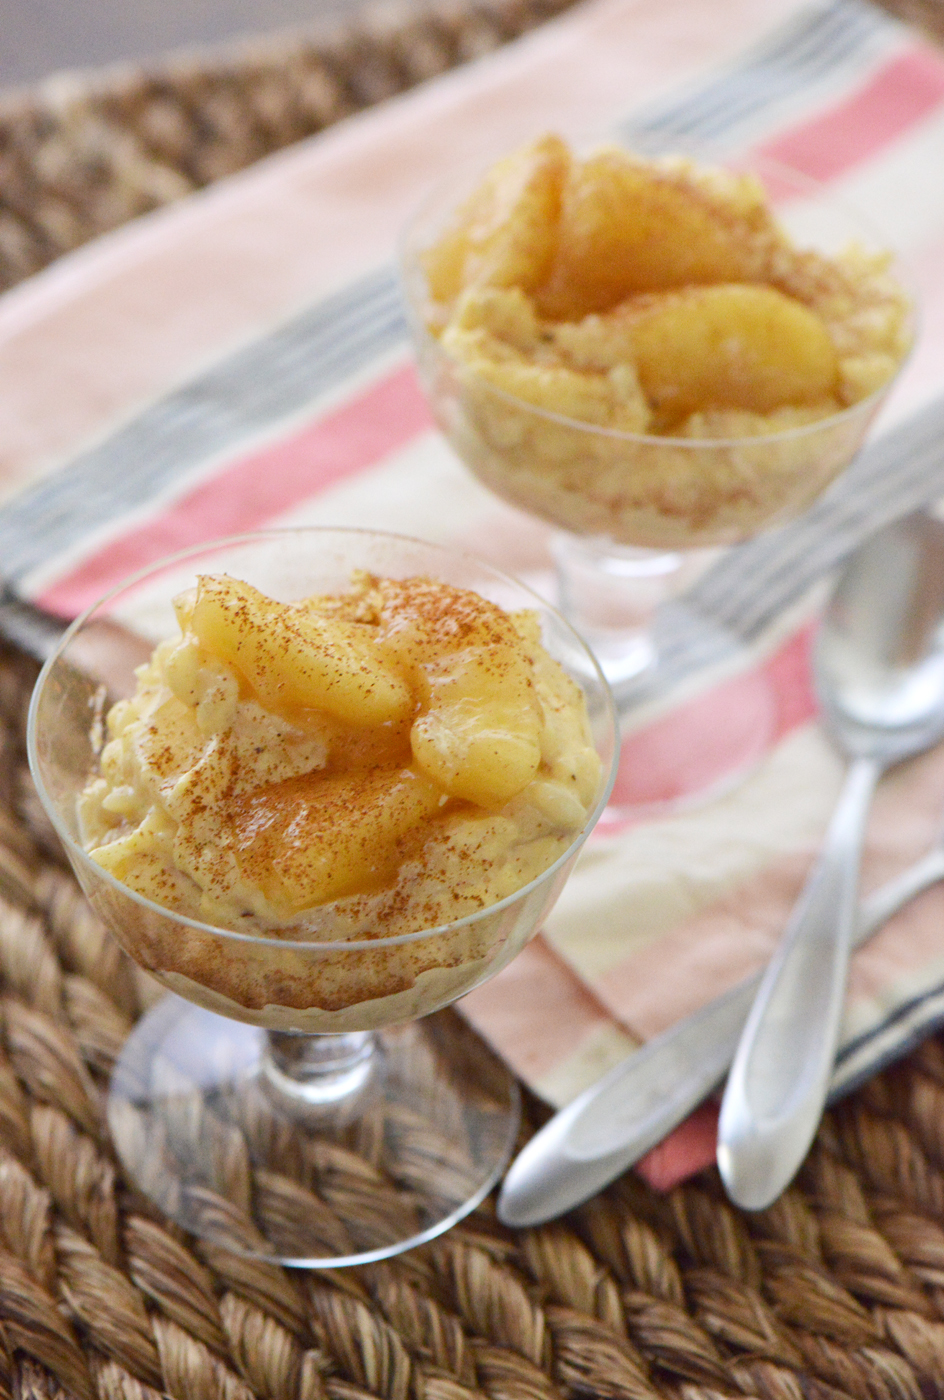 Arroz con Leche with Glazed Apples